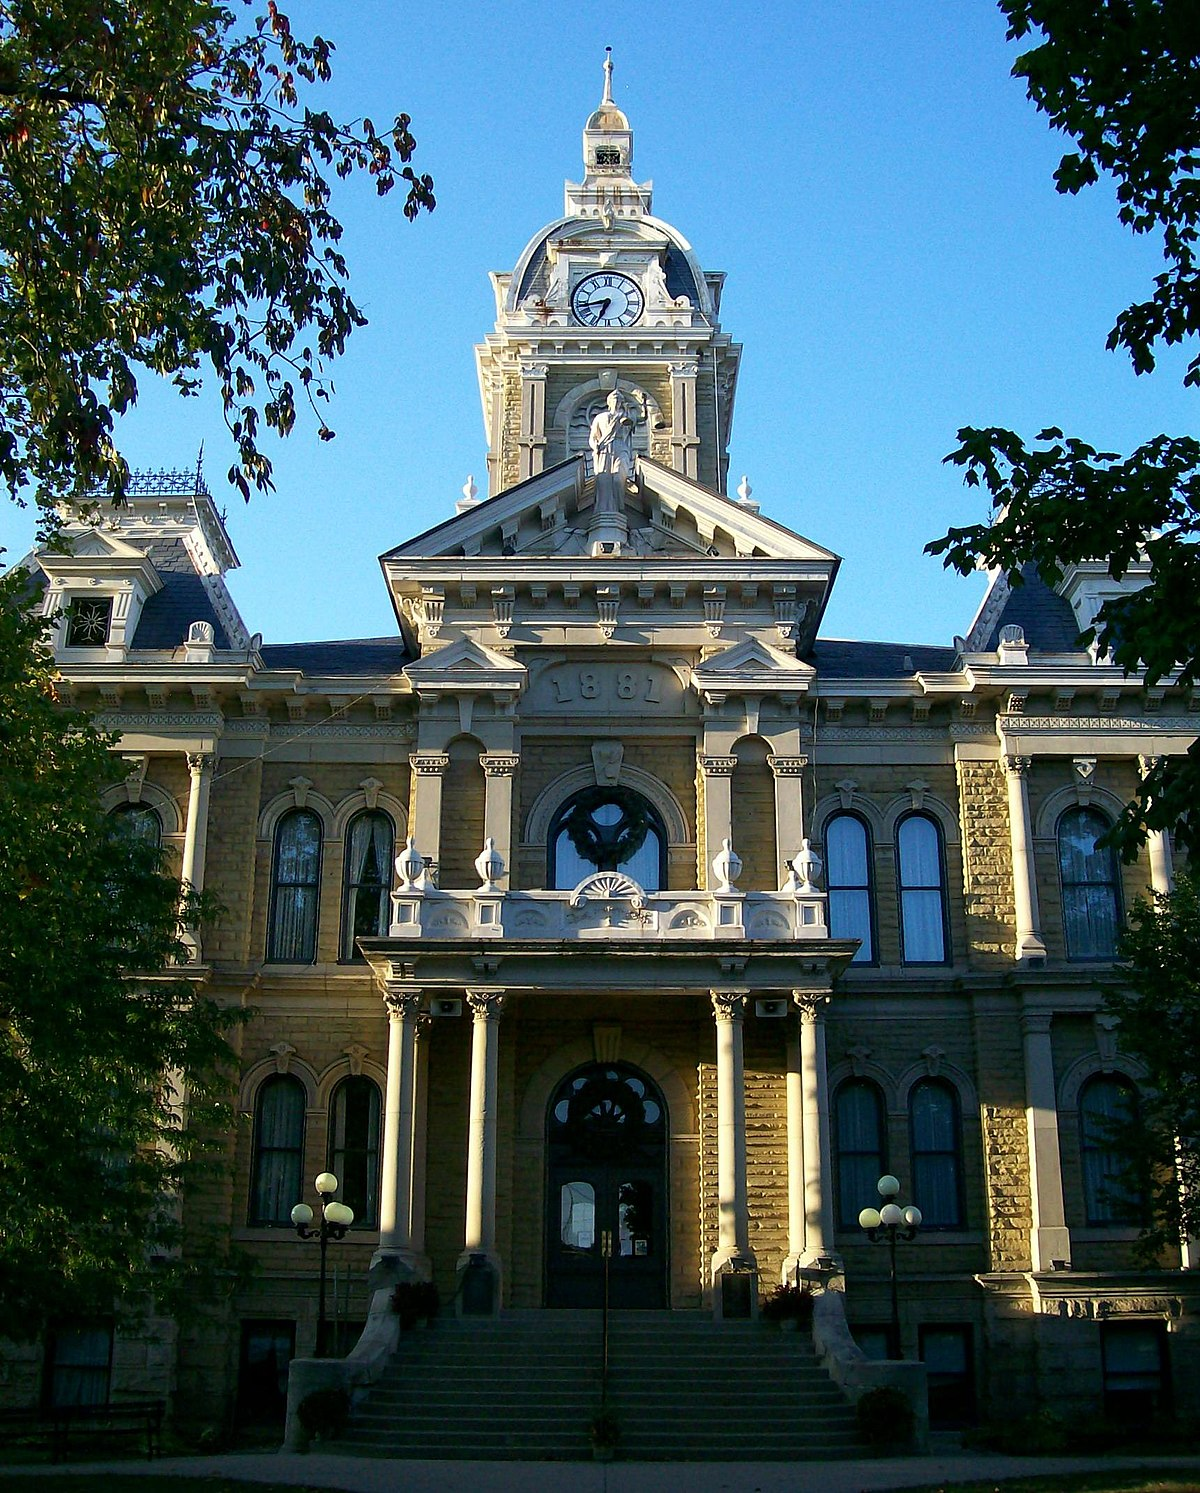 Guernsey County Courthouse Wikipedia